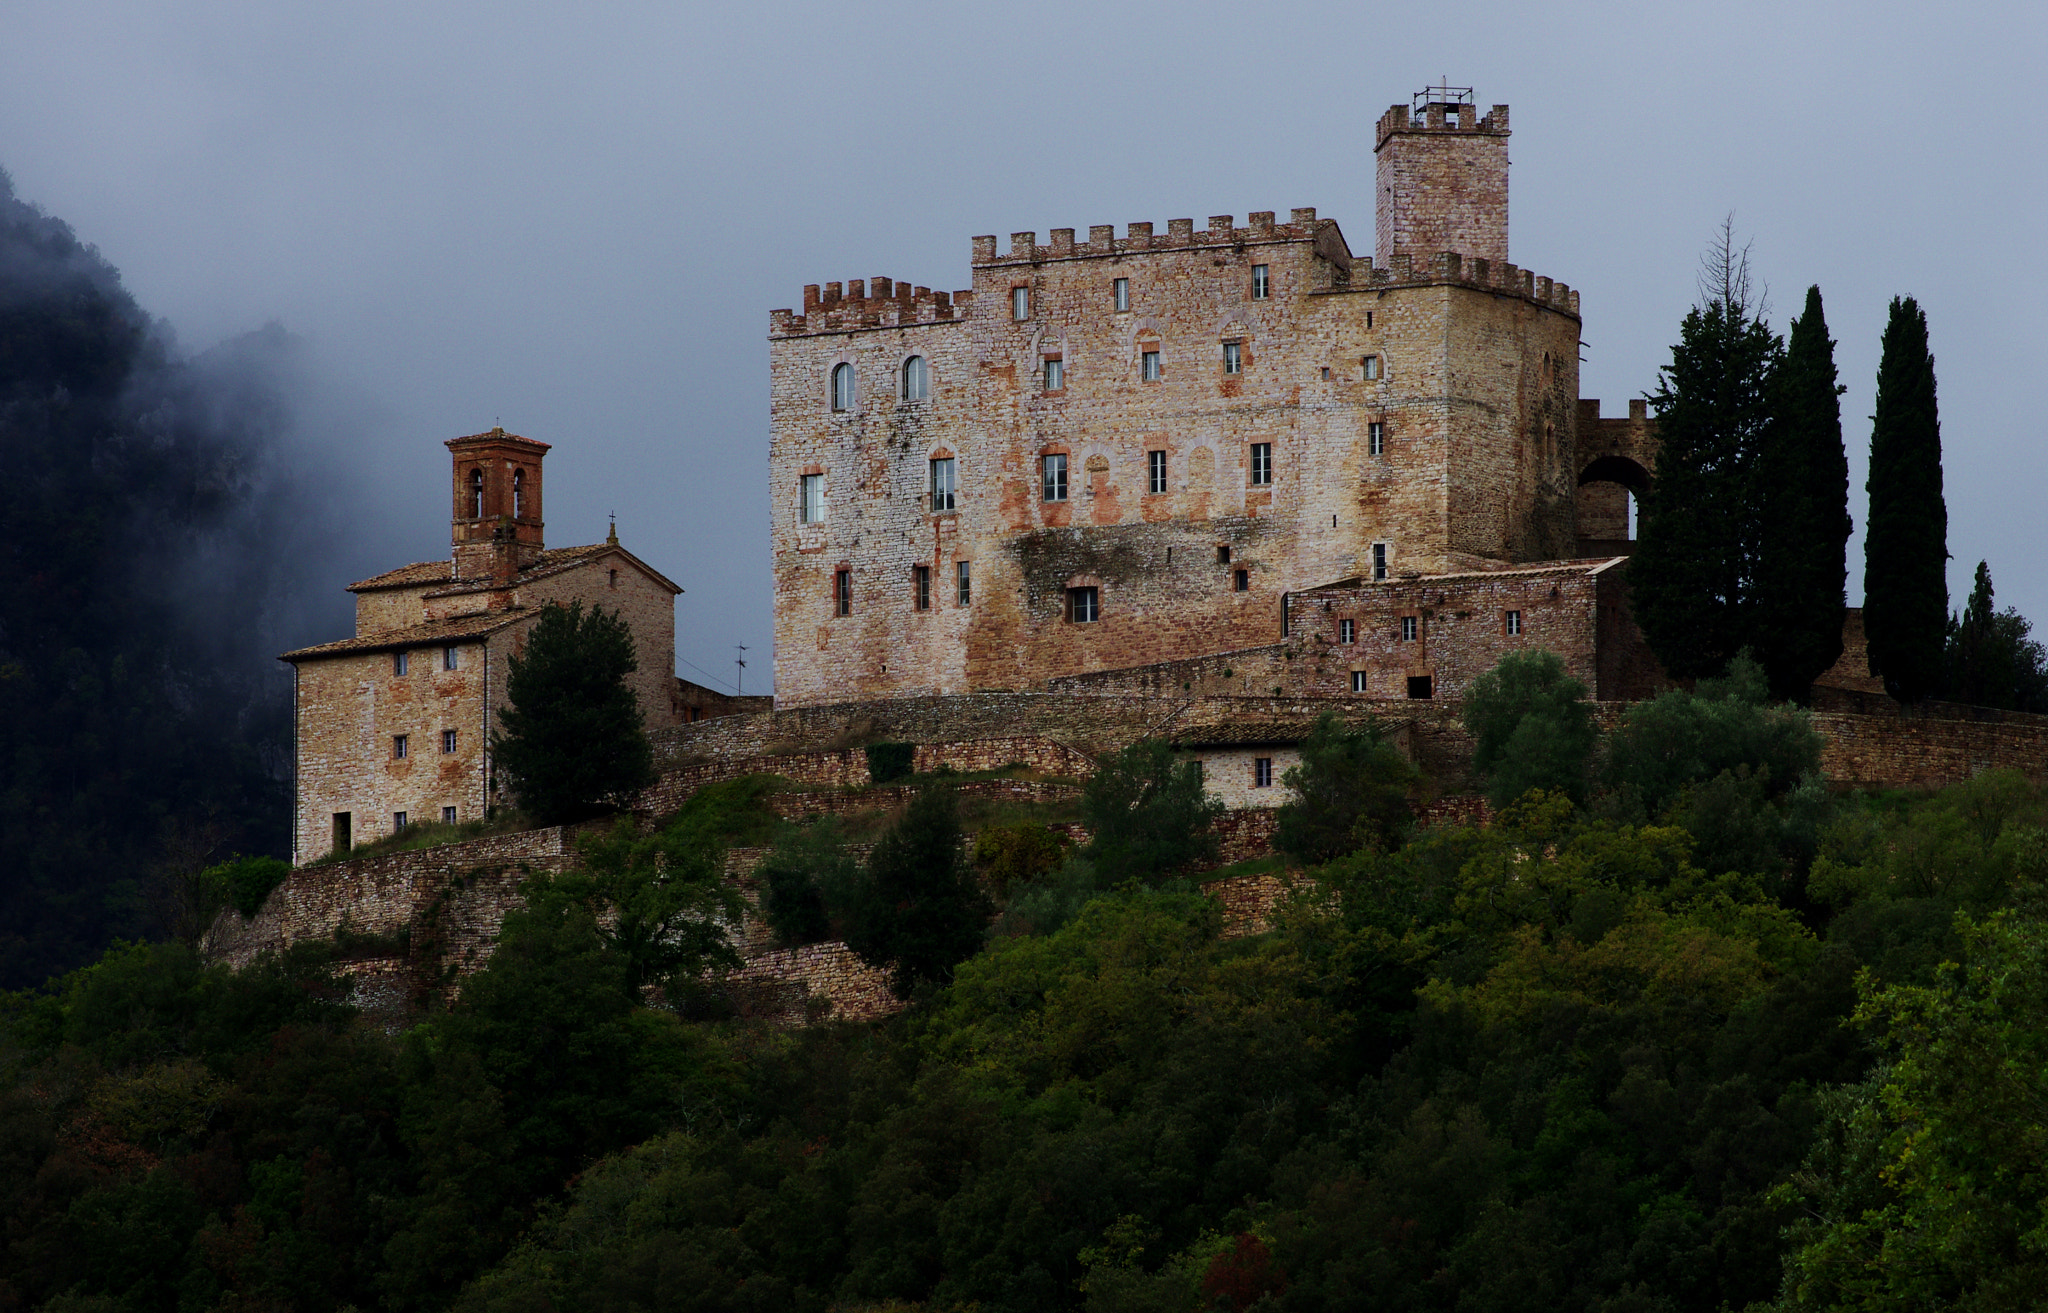 Photograph Castle footsteps 2 by Paolo Cendron on 500px